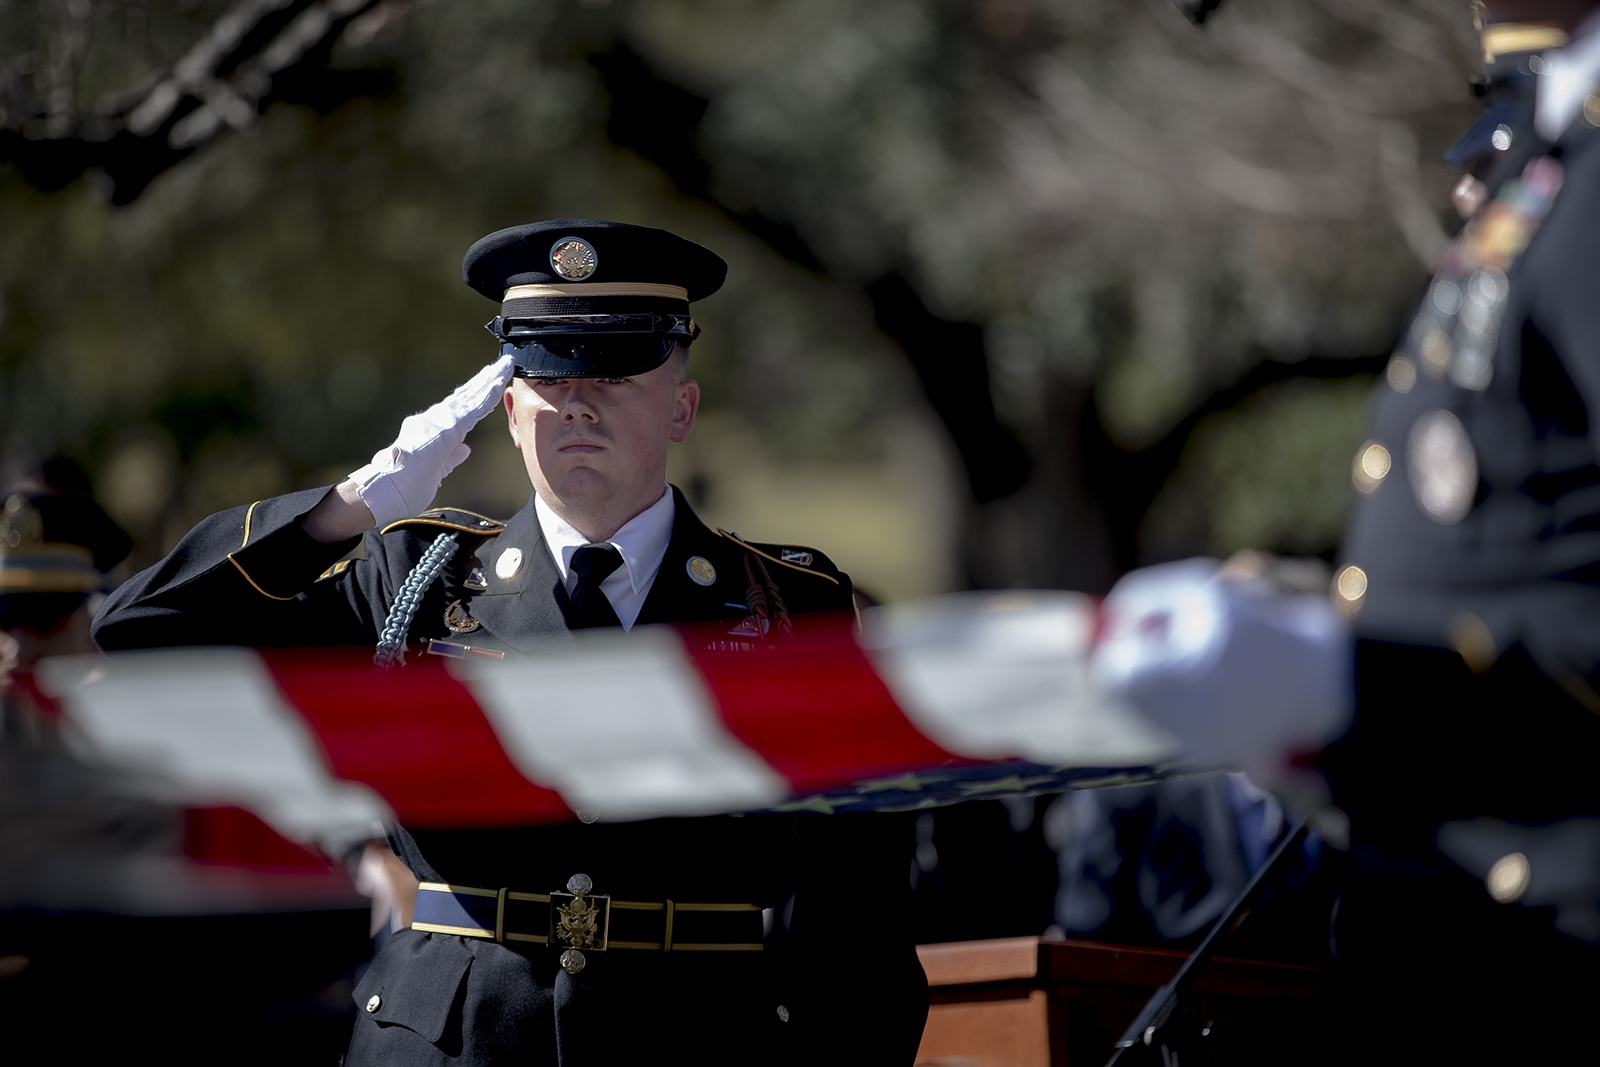 Members of an honor guard readies to fold an American flag that was draped on the casket of WWII veteran Richard Overton during a burial ceremony at the Texas State Cemetery on Saturday, Jan. 12, 2019, in Austin, Texas.  Overton, who died on Dec. 27, 2018, was the nation's oldest living World War II veteran. (Nick Wagner/Austin American-Statesman via AP)